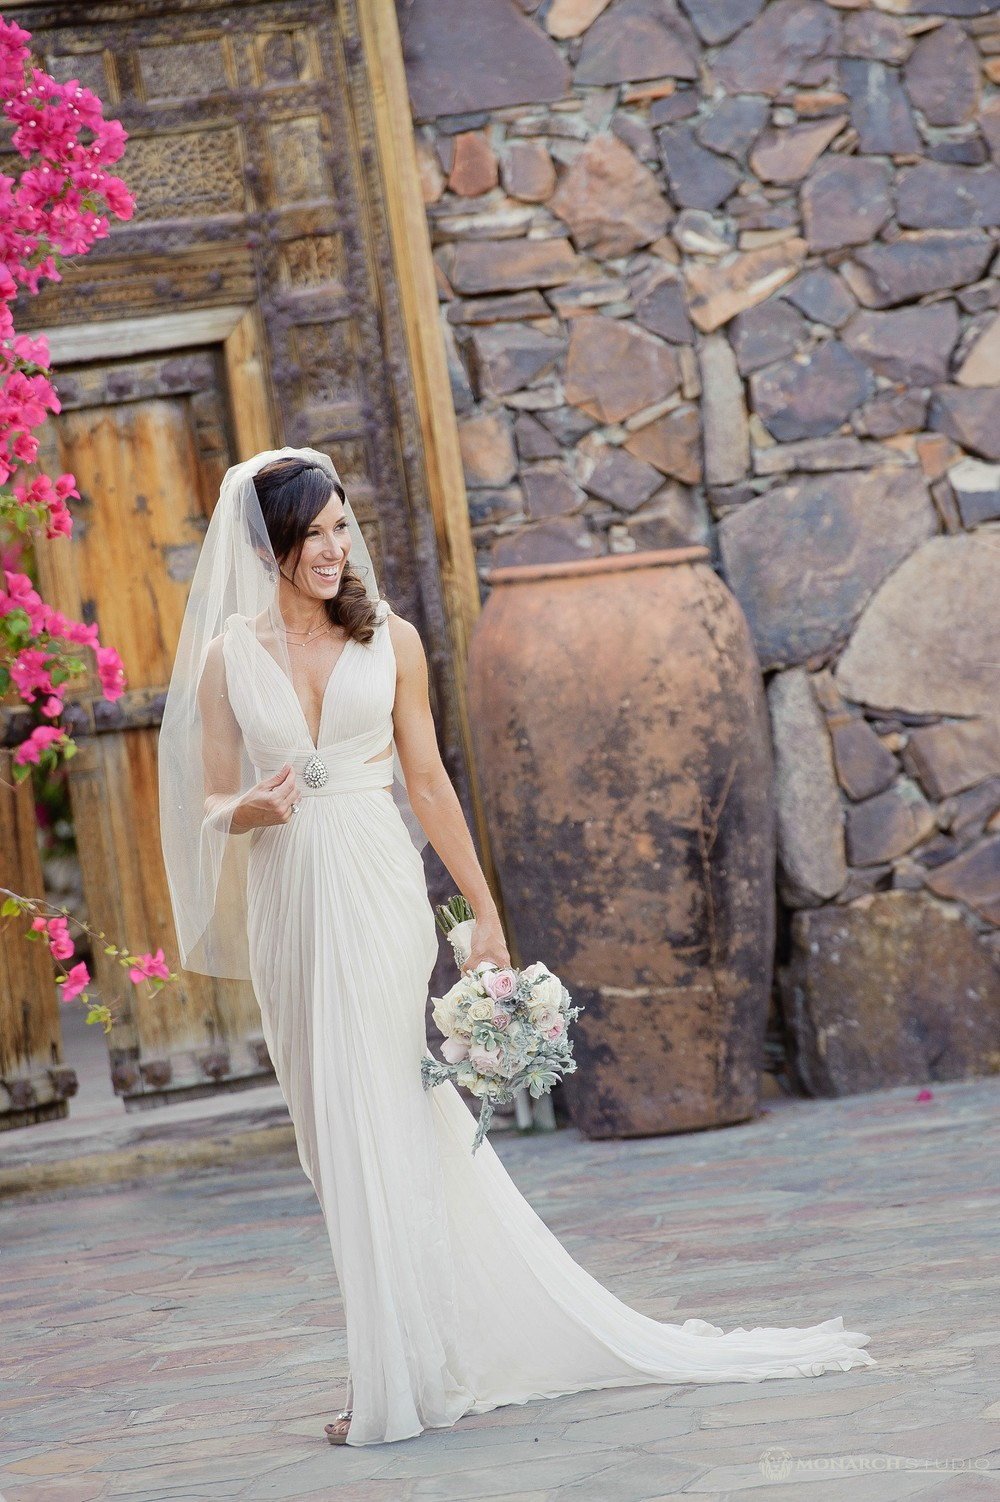 Beautiful bridal portrait with soft muted color palette flower bouquet.